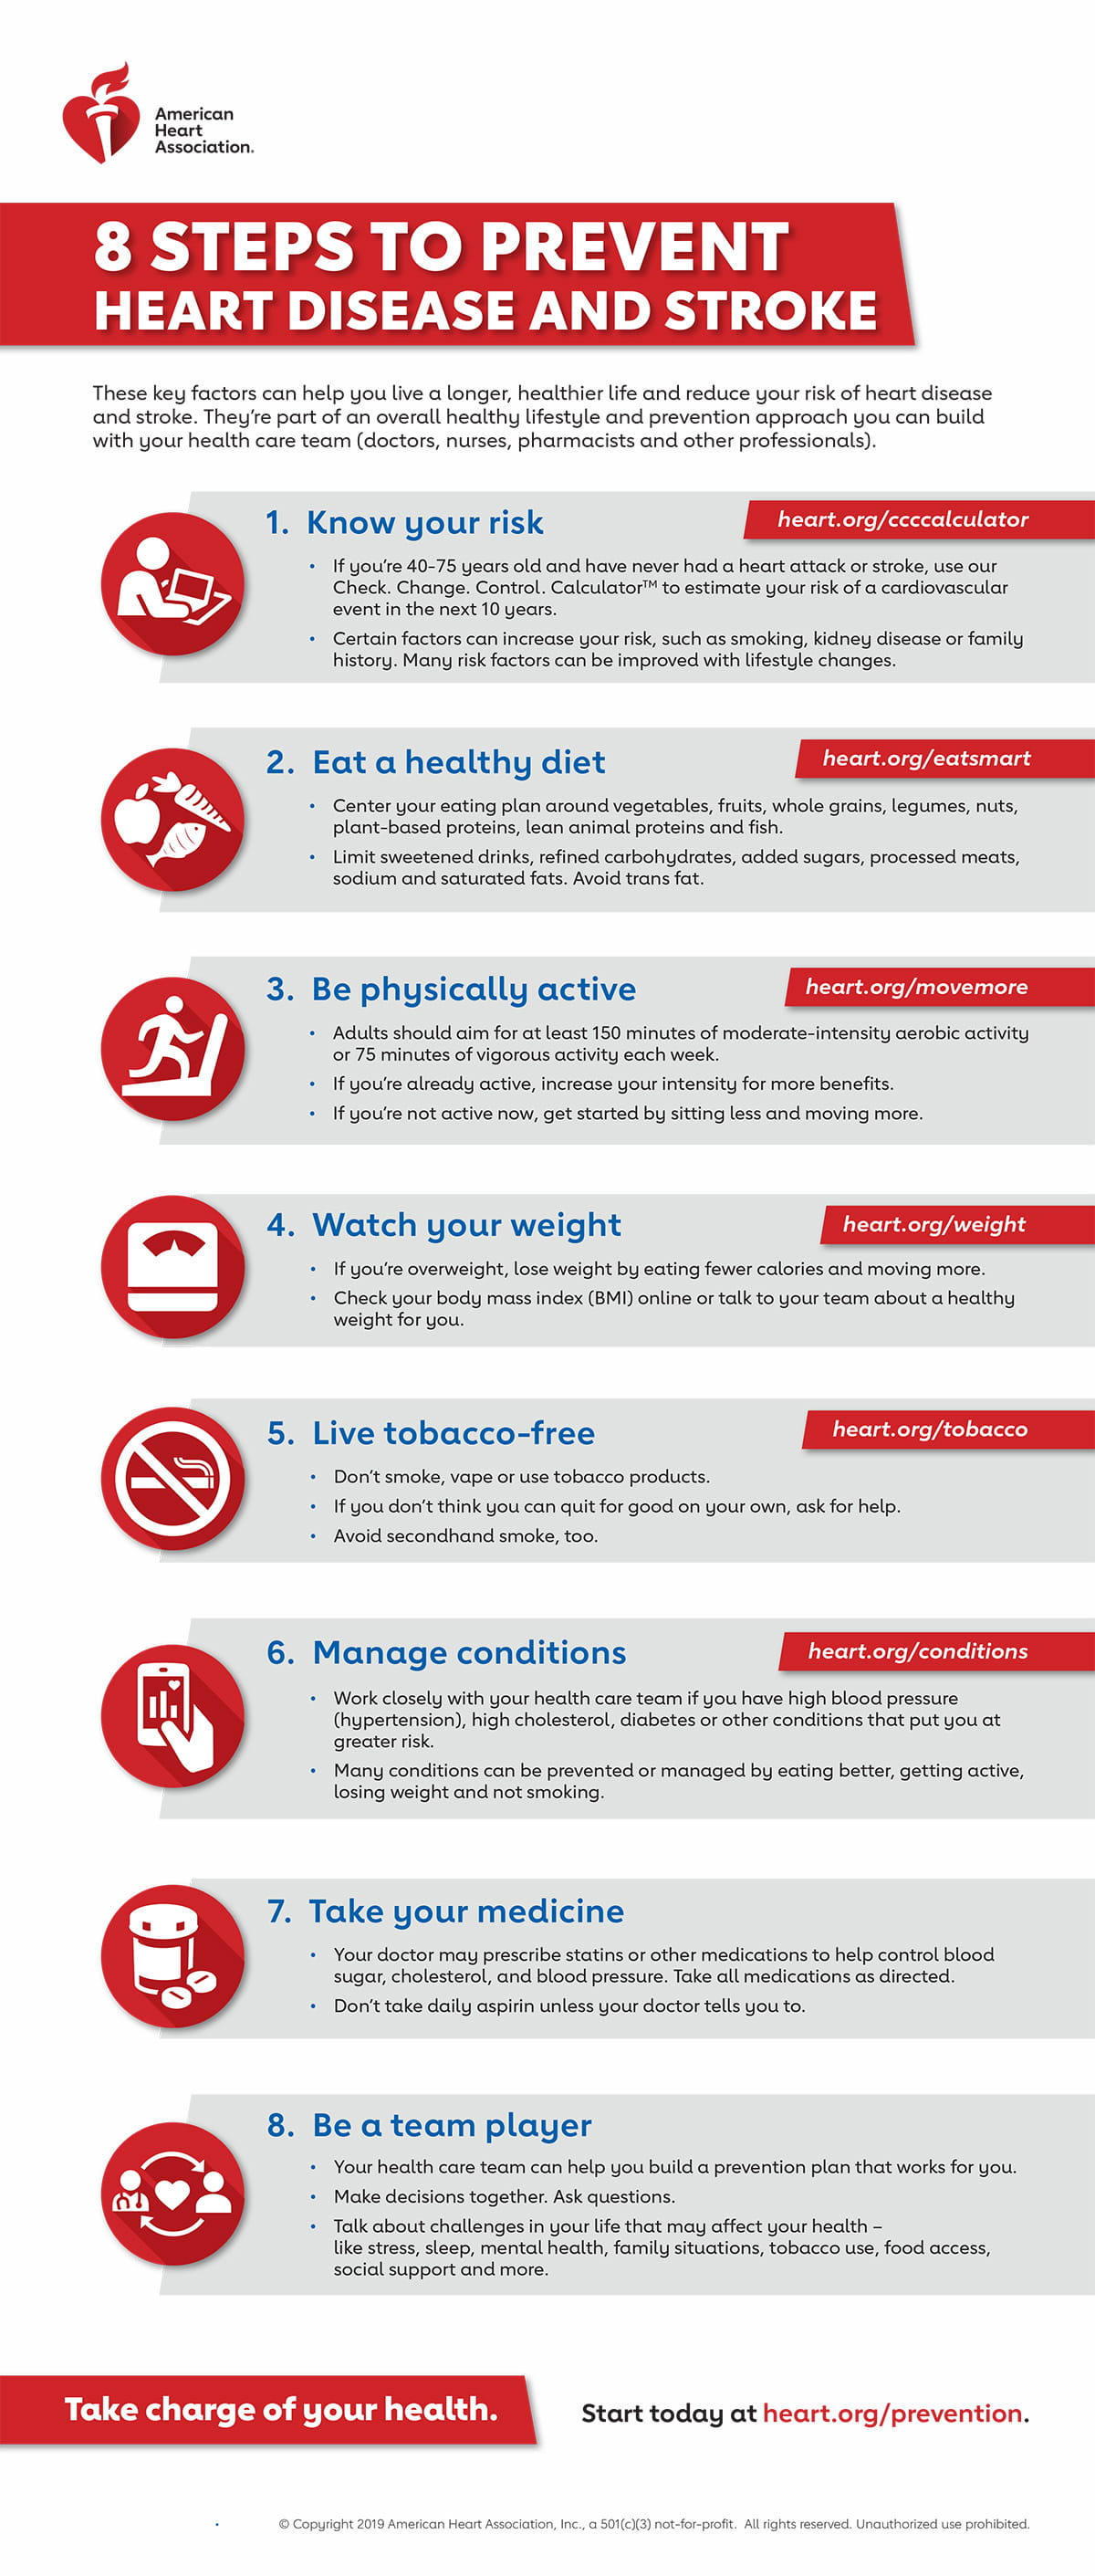 Disease X How Can We Fight London S Next Epidemic Museum Of London: 8 Steps To Prevent Heart Disease And Stroke Infographic